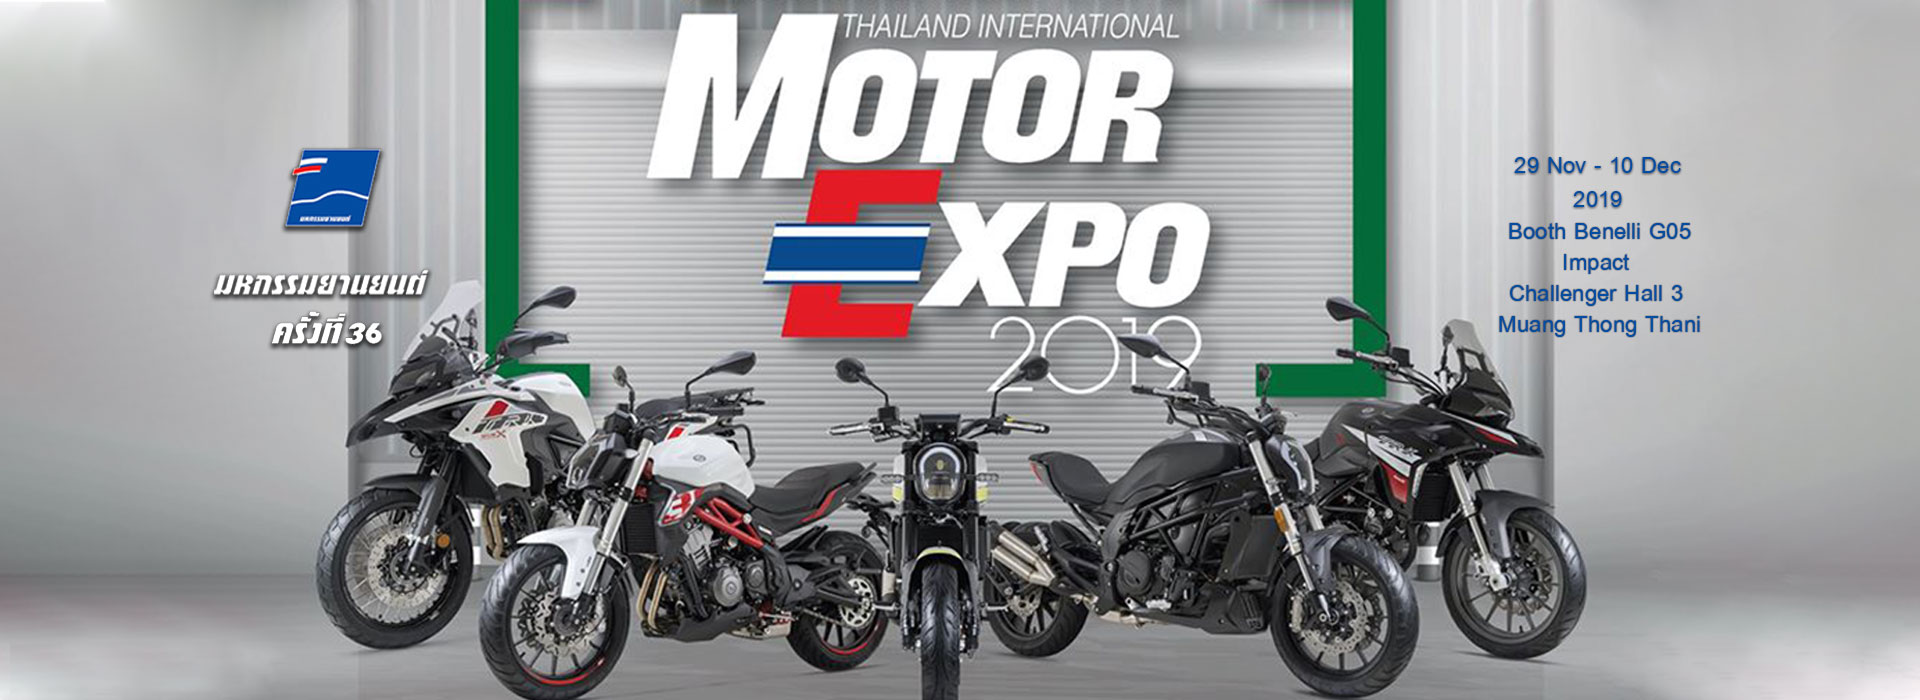 Benelli Banner MotorExpo Nov Dec19